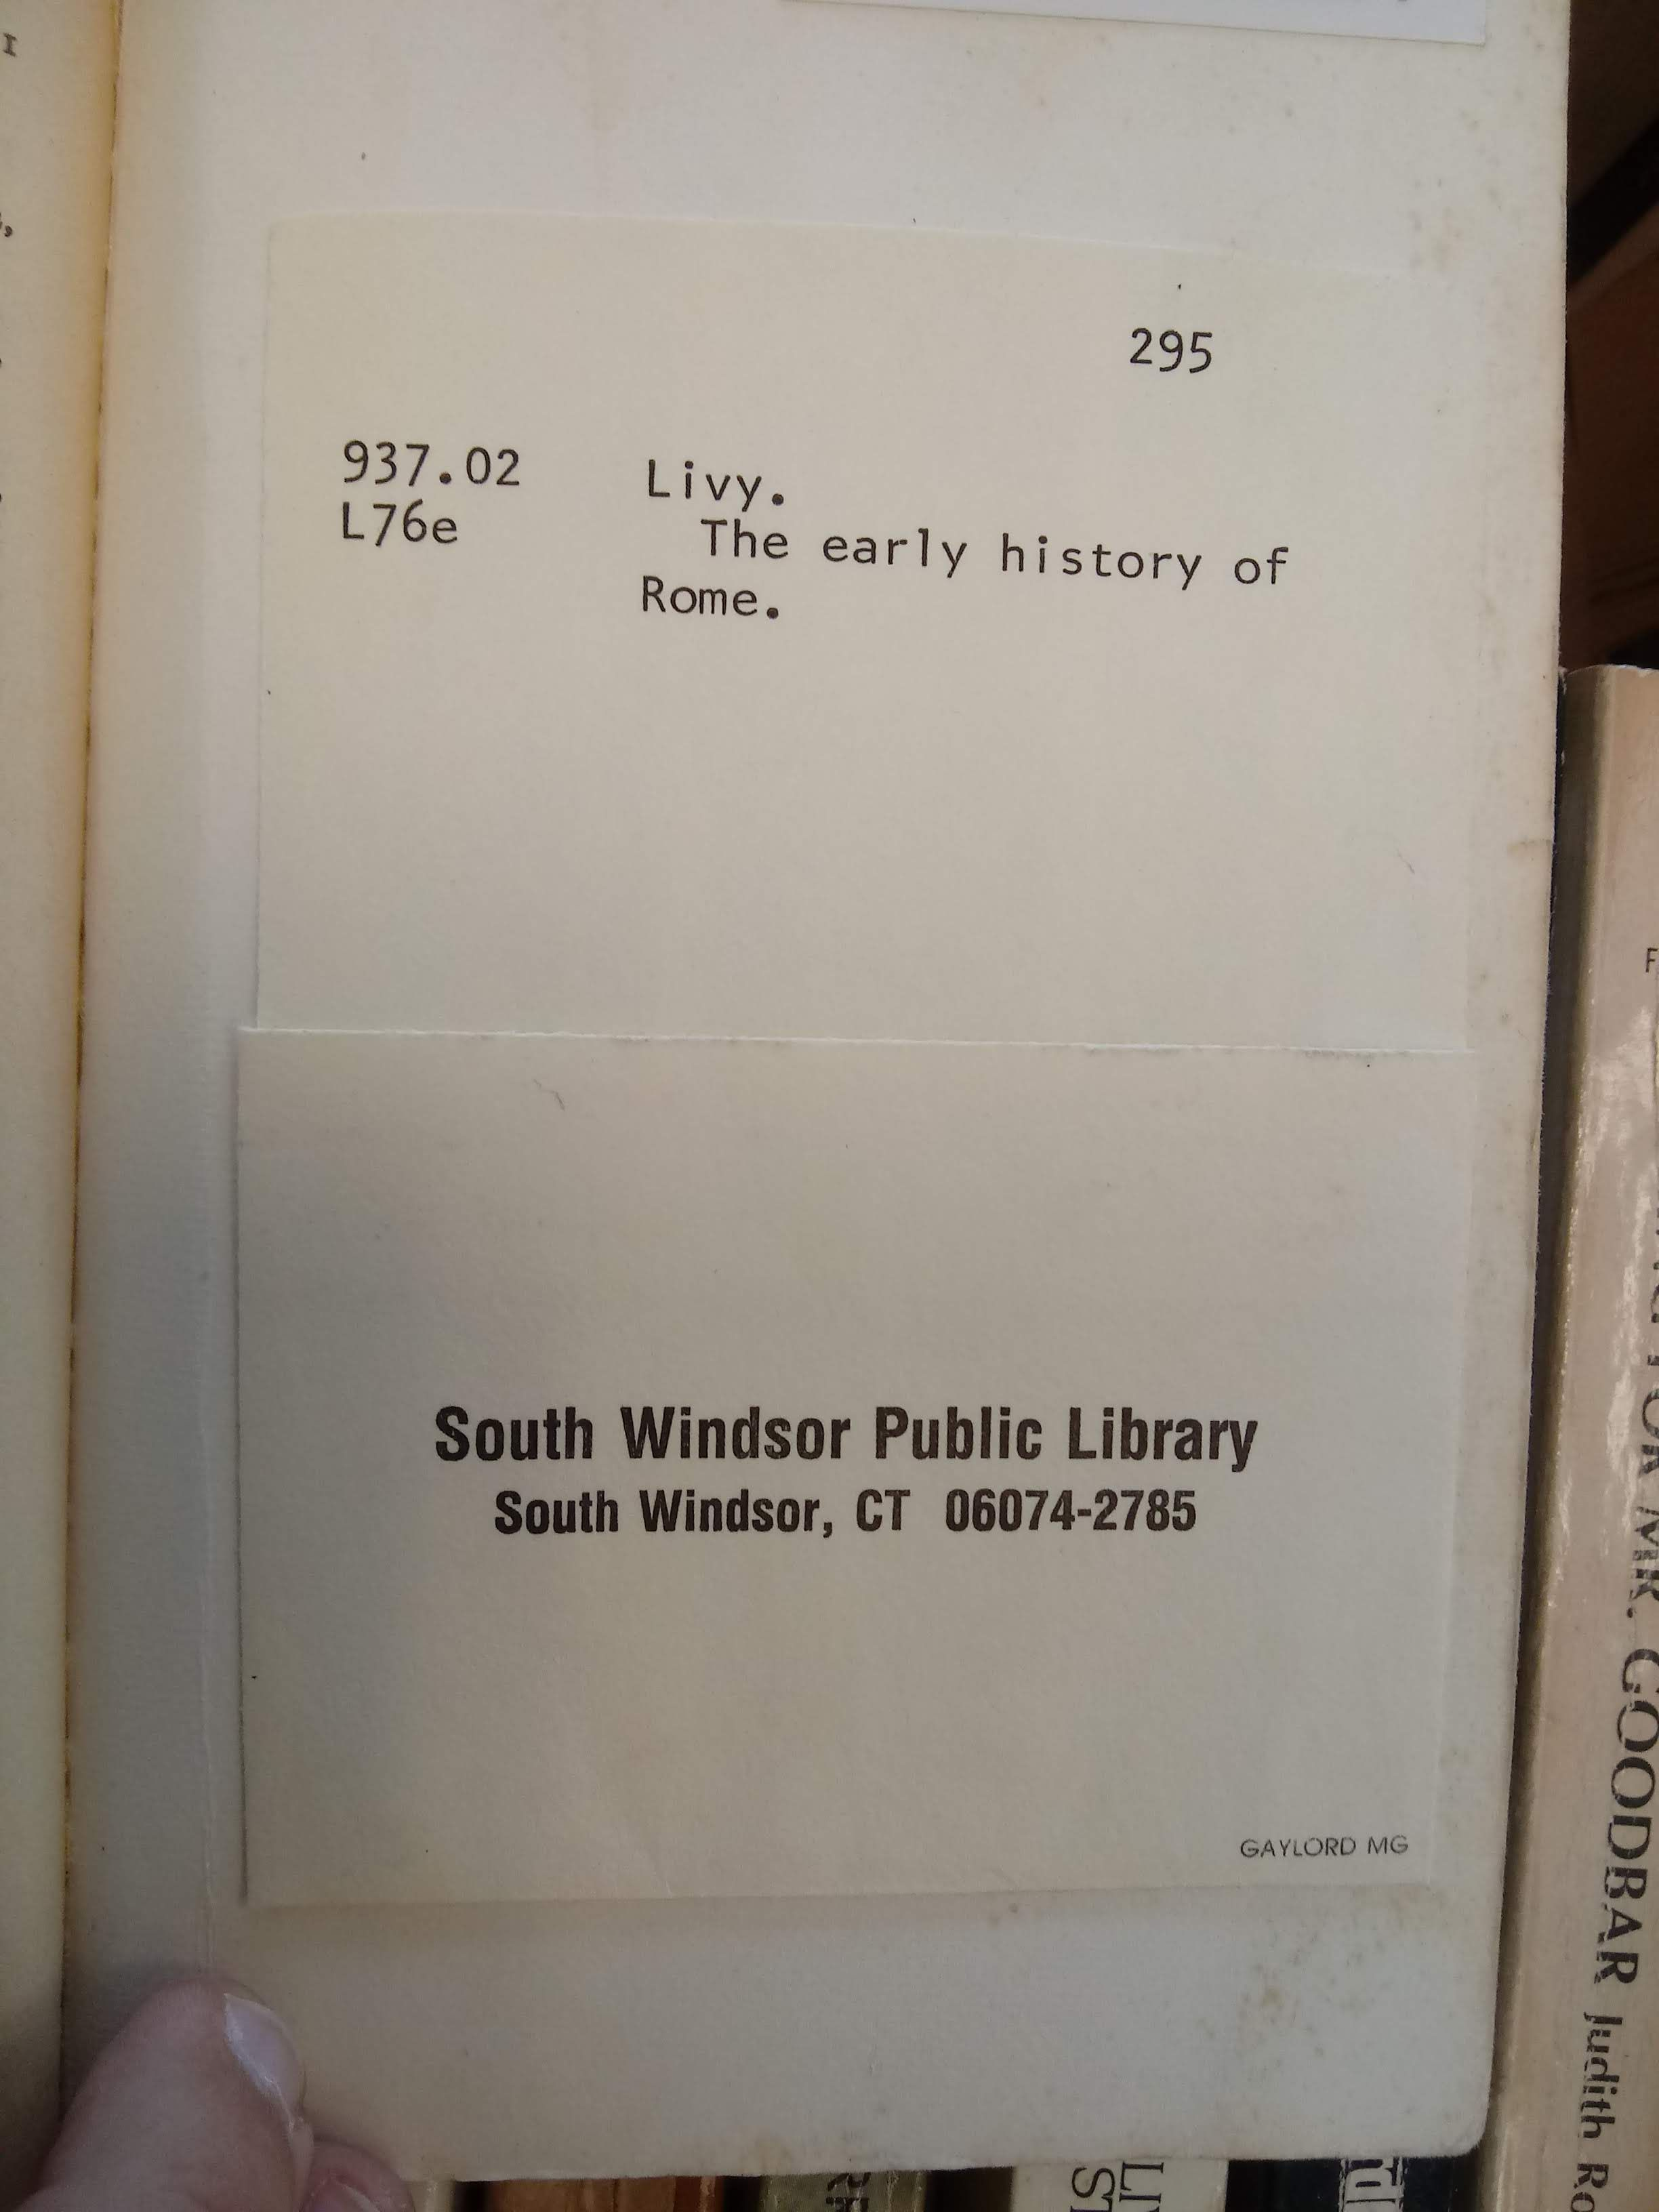 Pin By Ryan Blanck On Library Card Pockets From Ex Library Books Library Books Library Card Cards